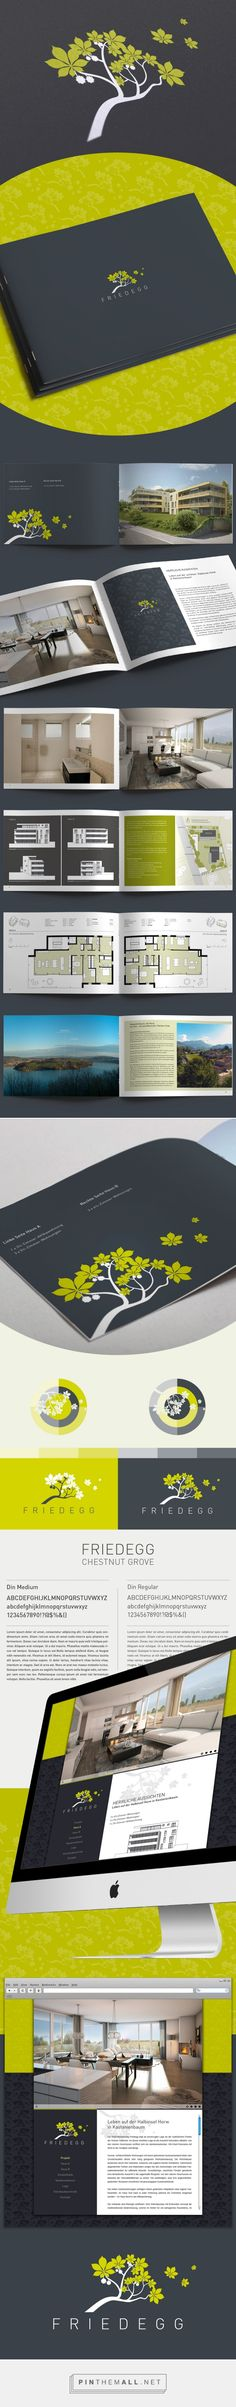 Real Estate Branding Friedegg on Behance - created via http://pinthemall.net